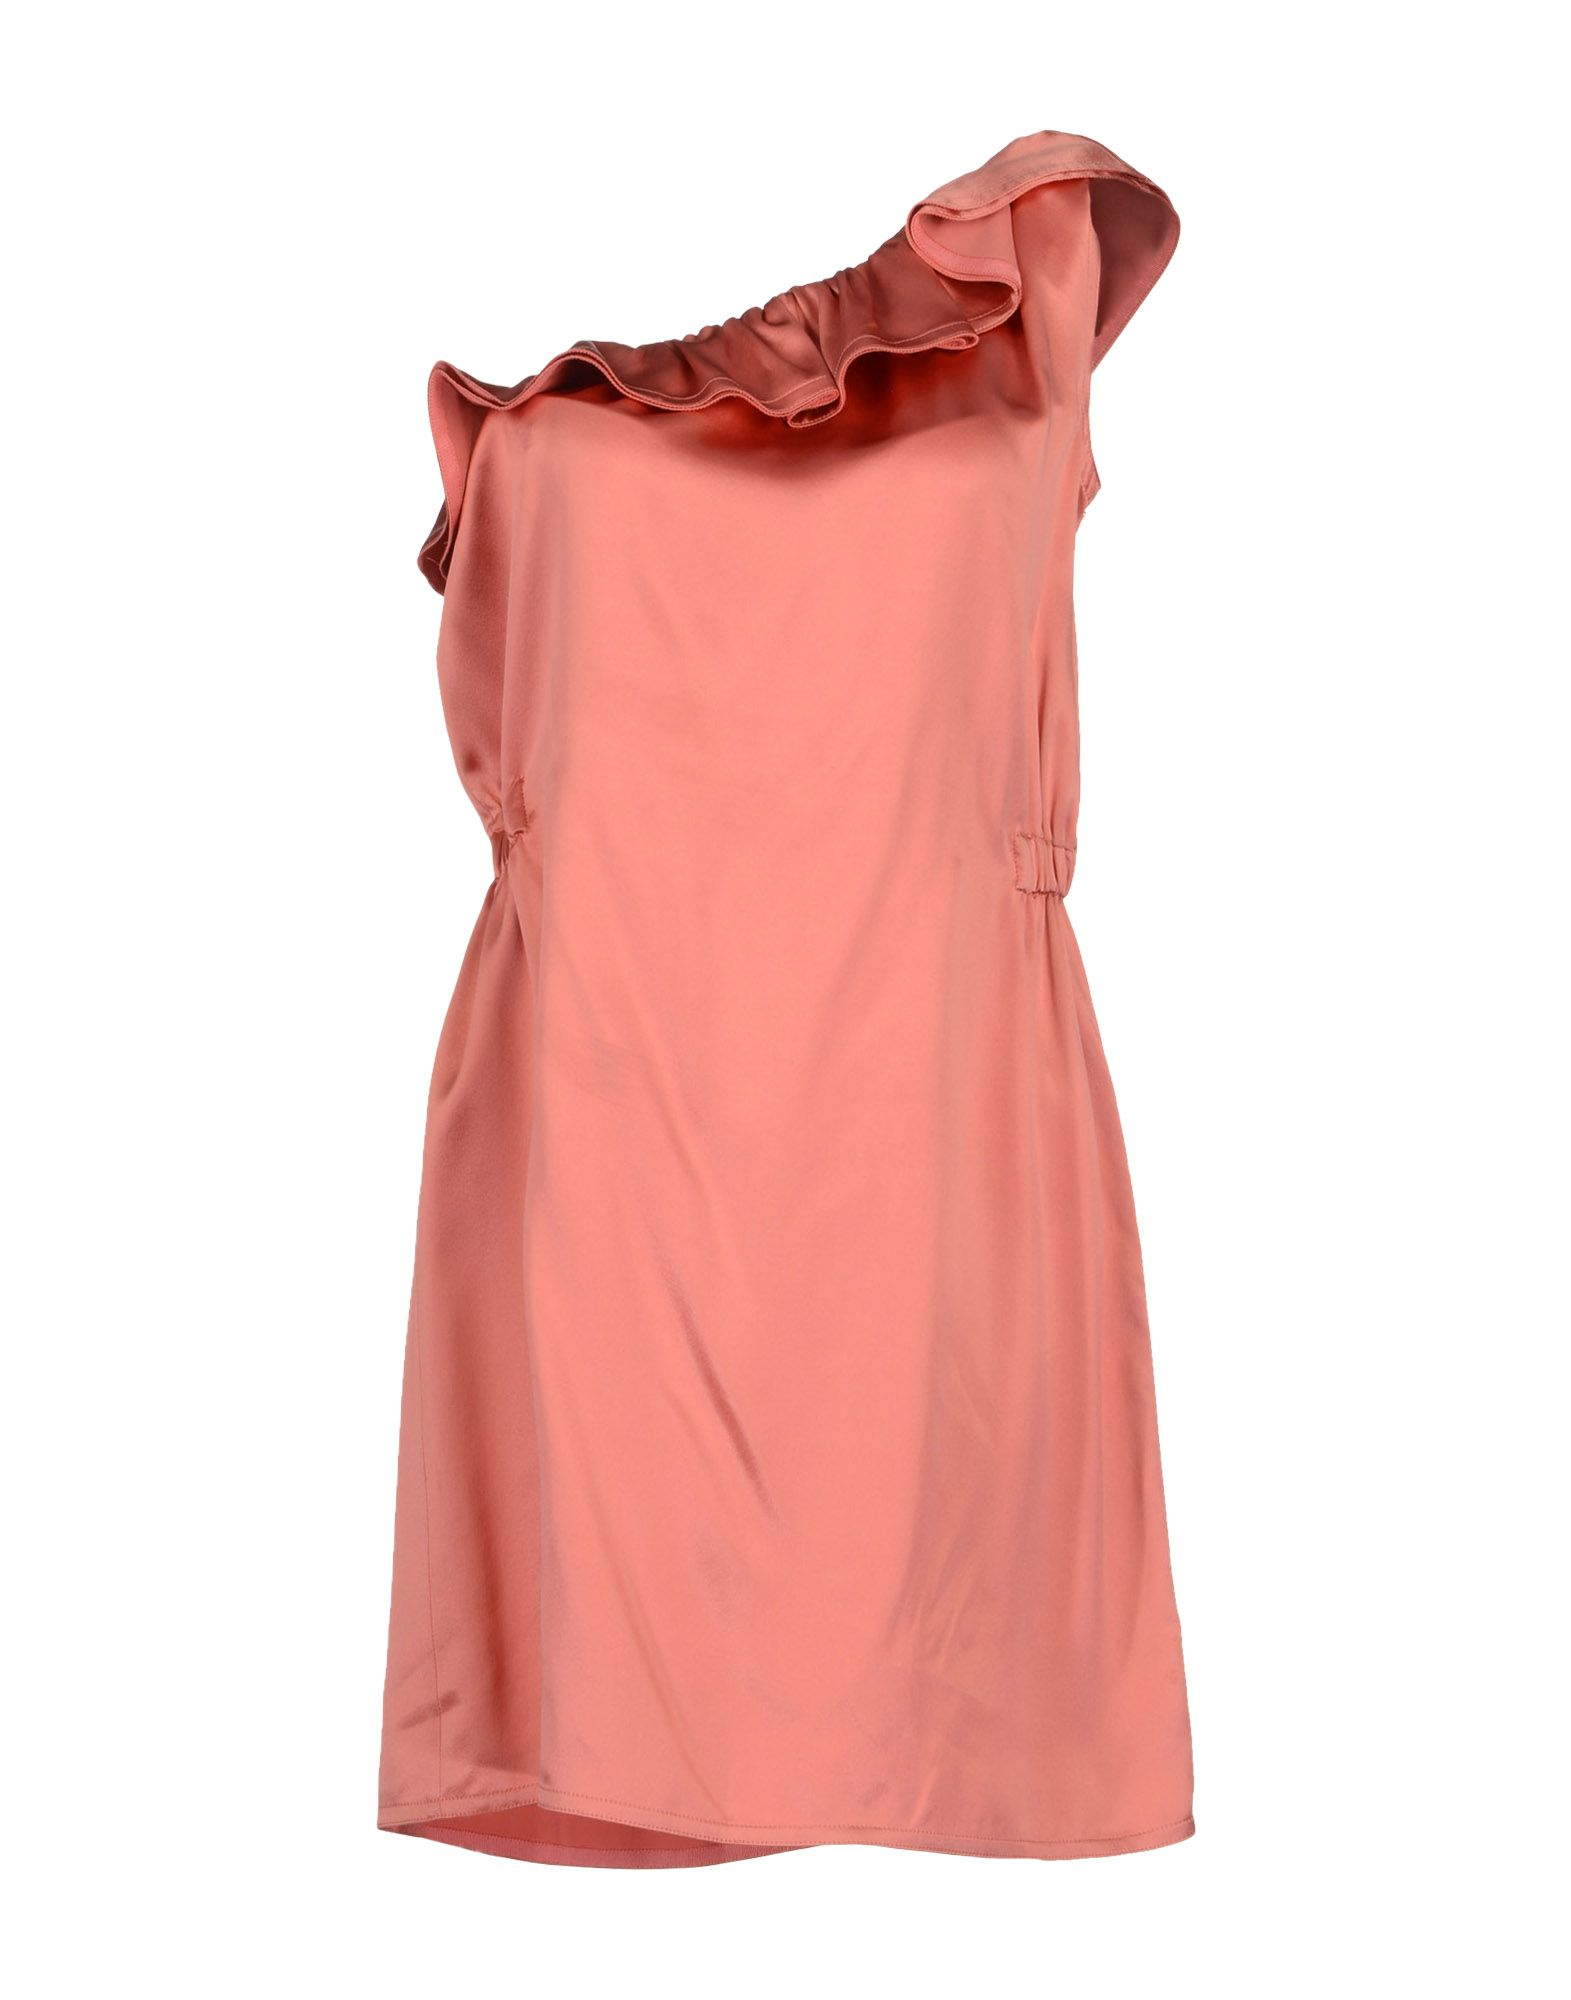 Joseph Short Dress In Pink Pastel Pink Lyst